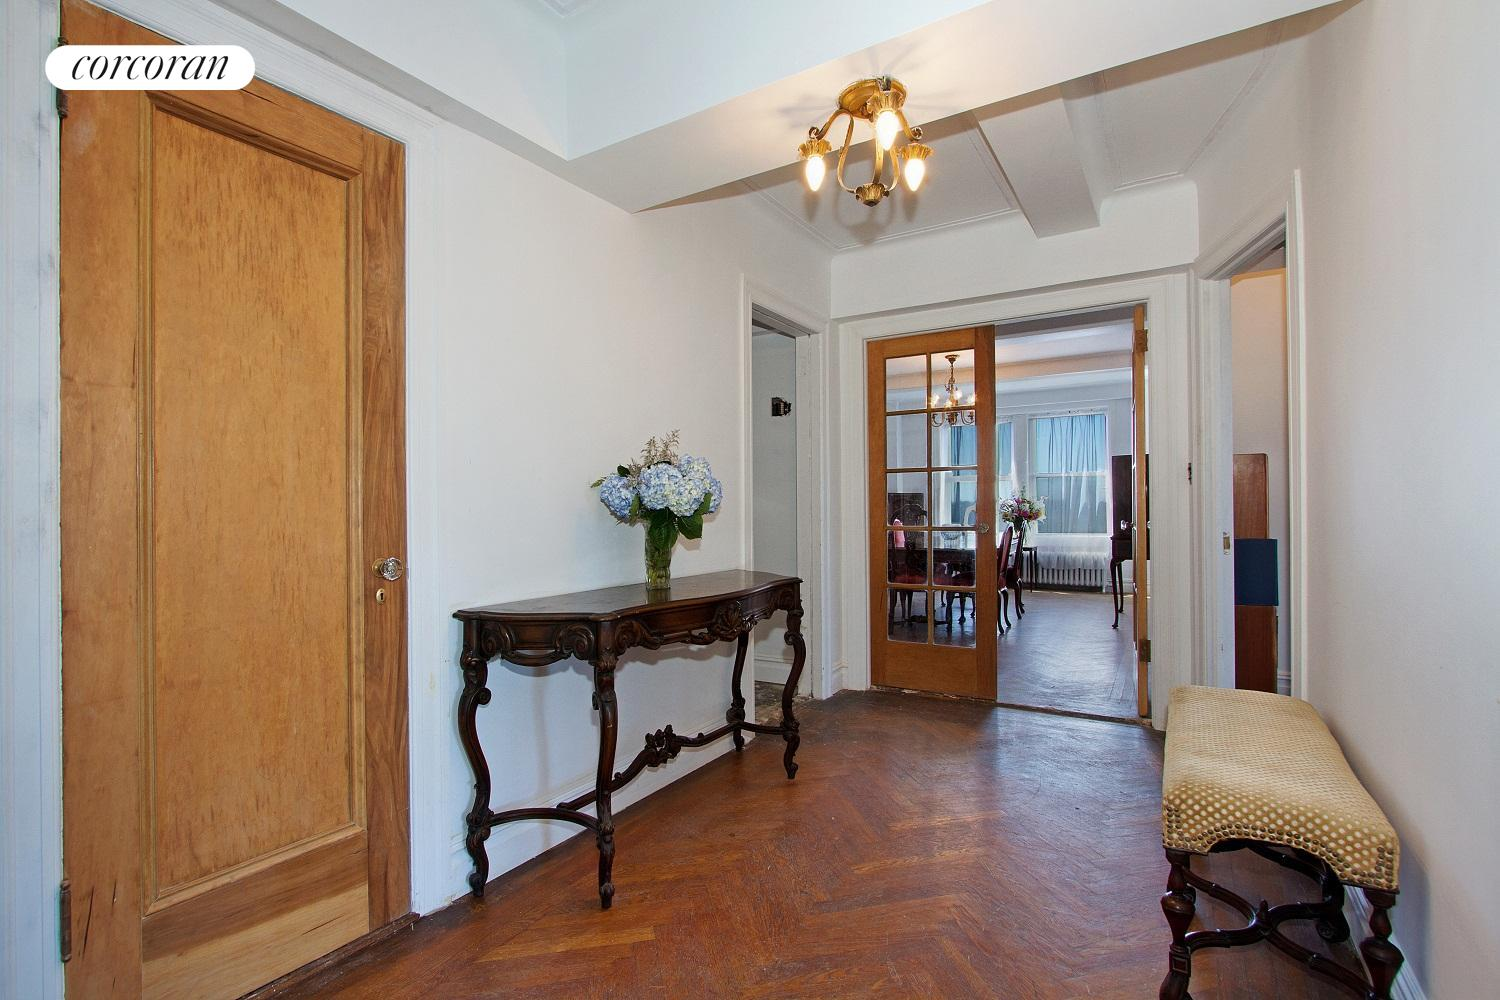 600 West 111th Street, Apt. 15E, Morningside Heights